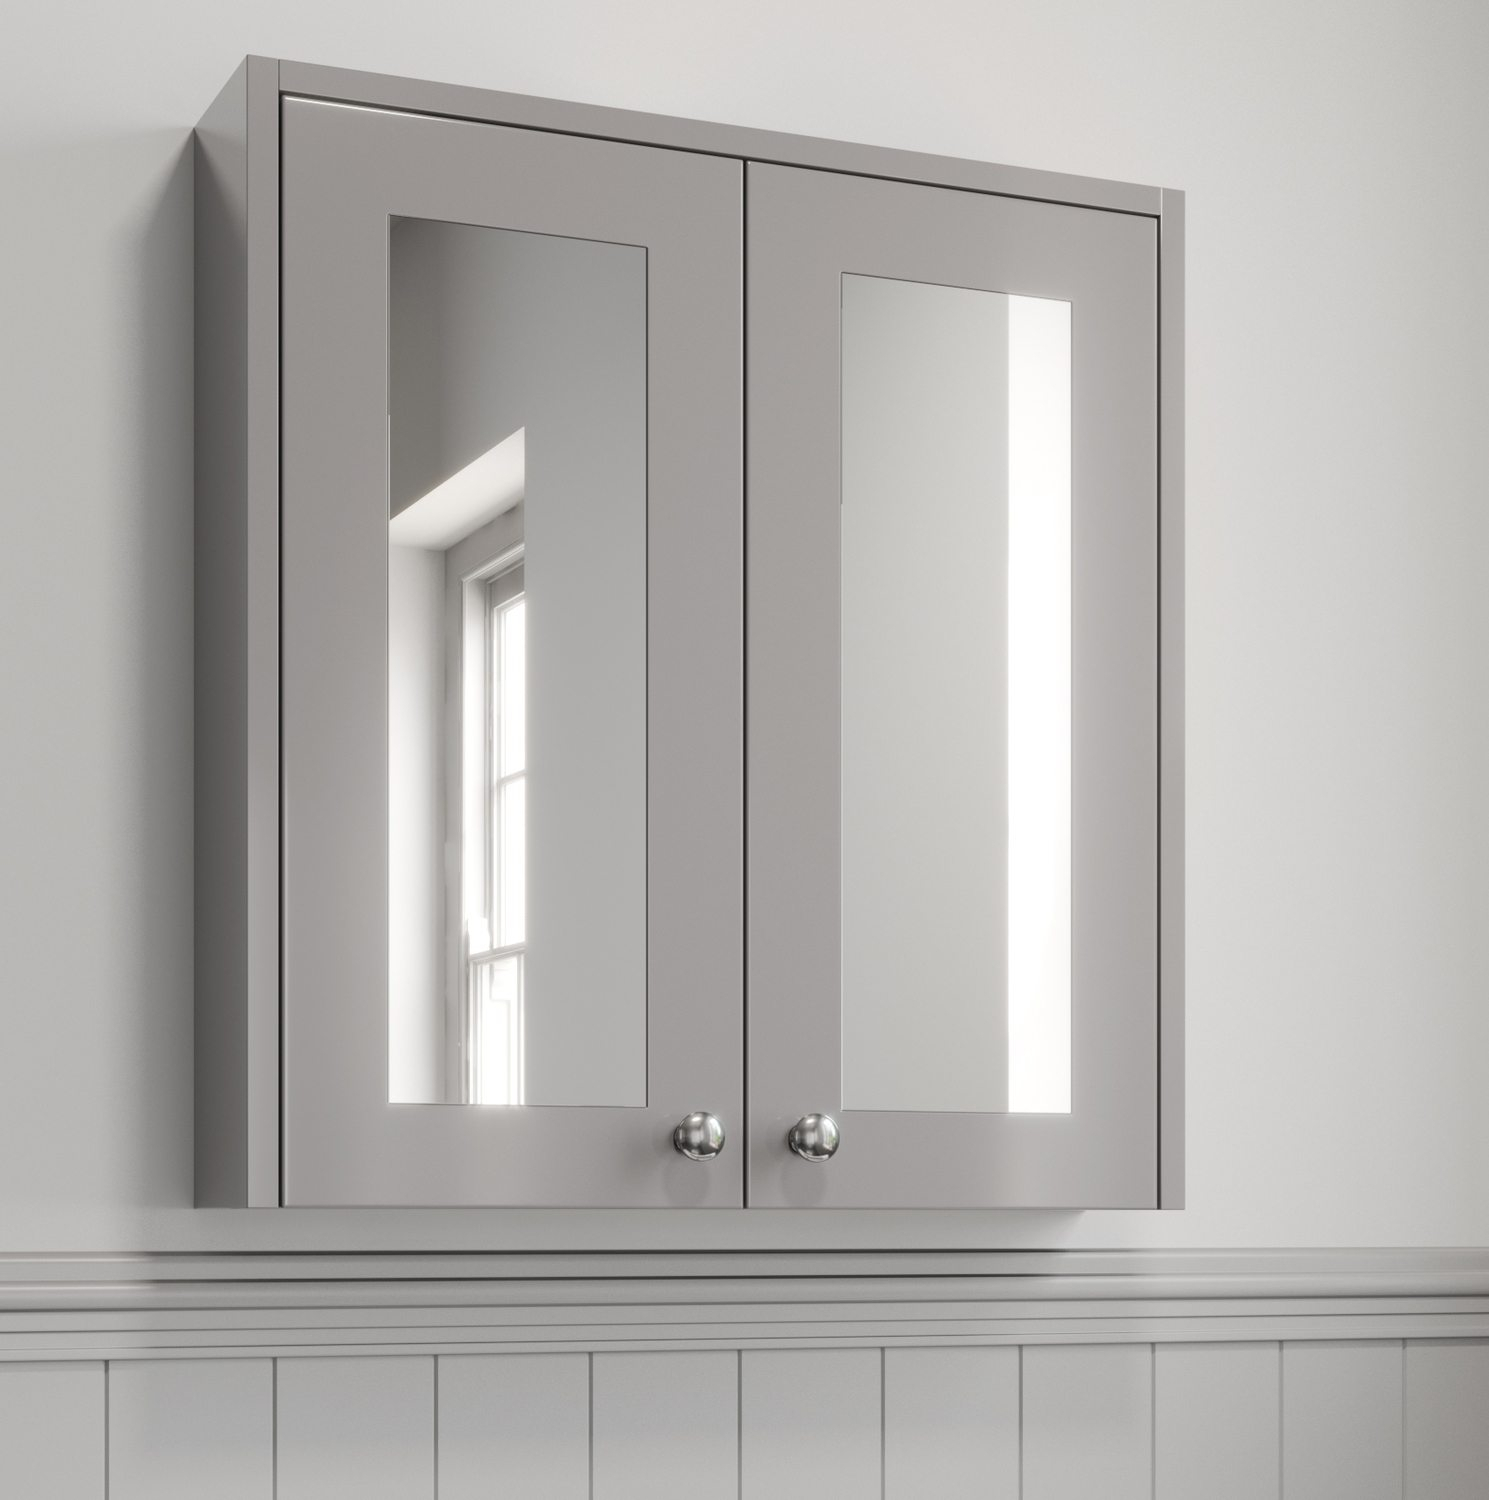 Details About 600Mm Bathroom Mirror Cabinet 2 Door Storage Cupboard Wall  Hung Grey Traditional In Polen Traditional Wall Mirrors (View 5 of 20)